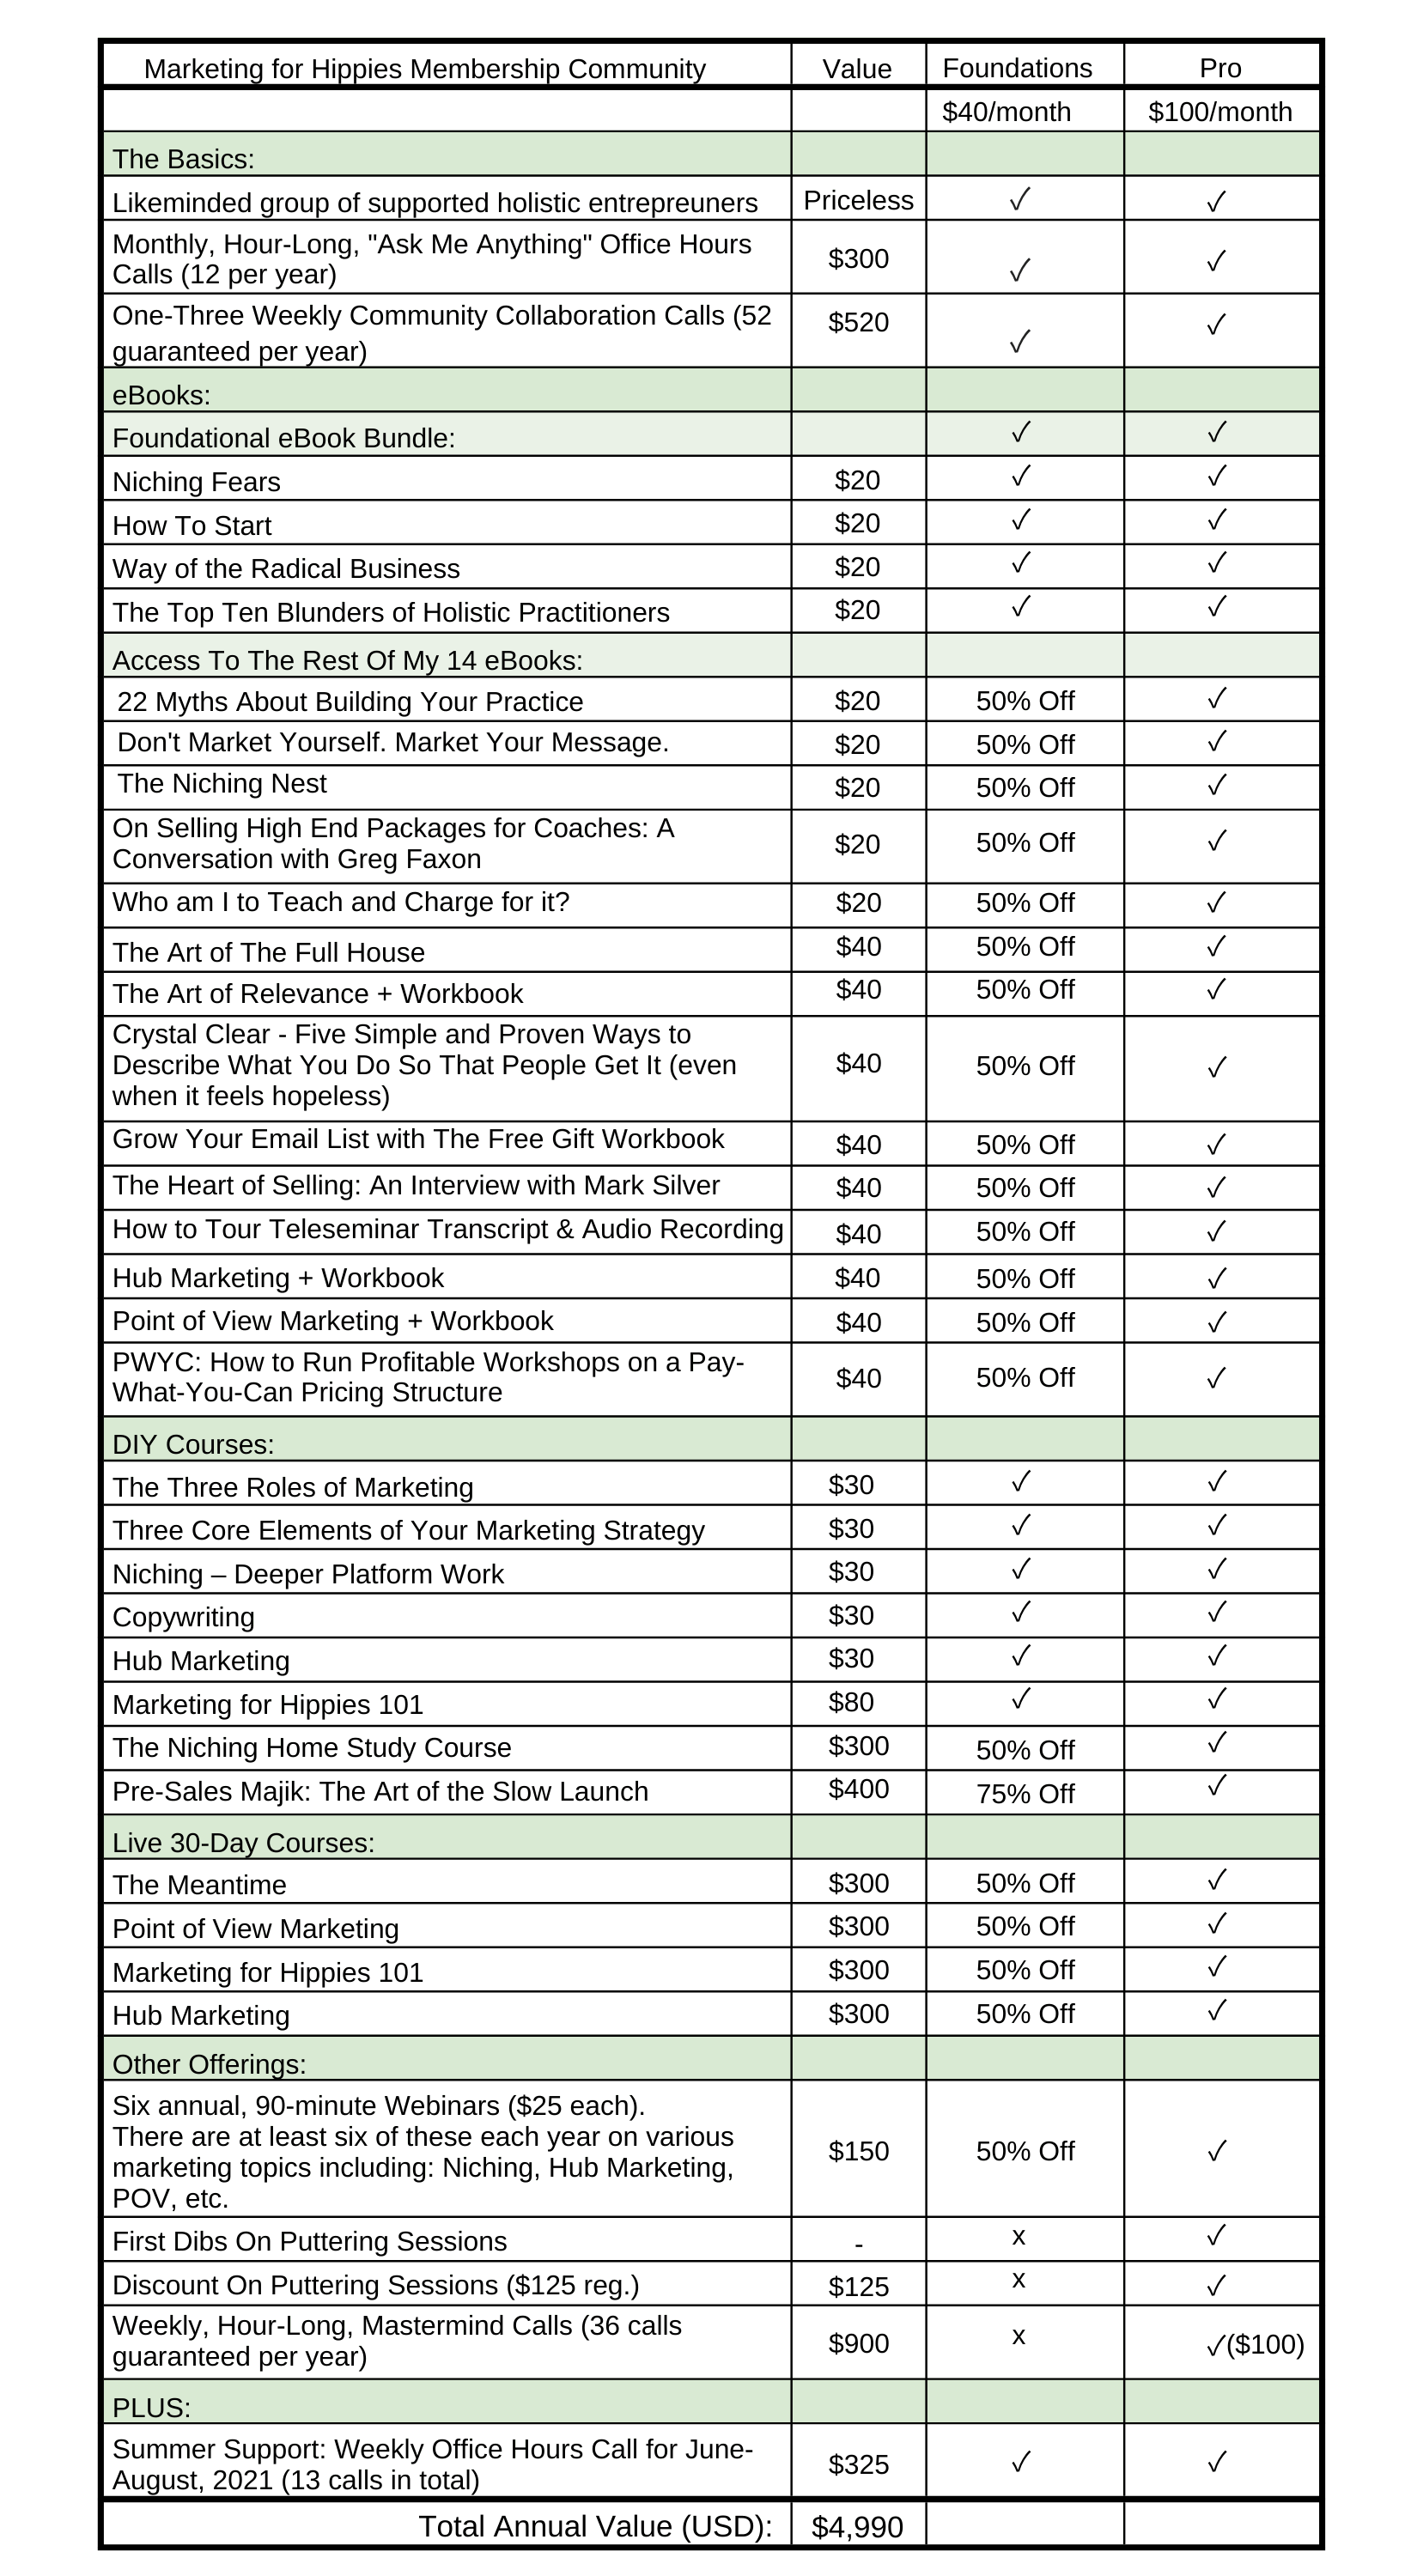 Comparison Chart of Marketing for Hippies Membership Access